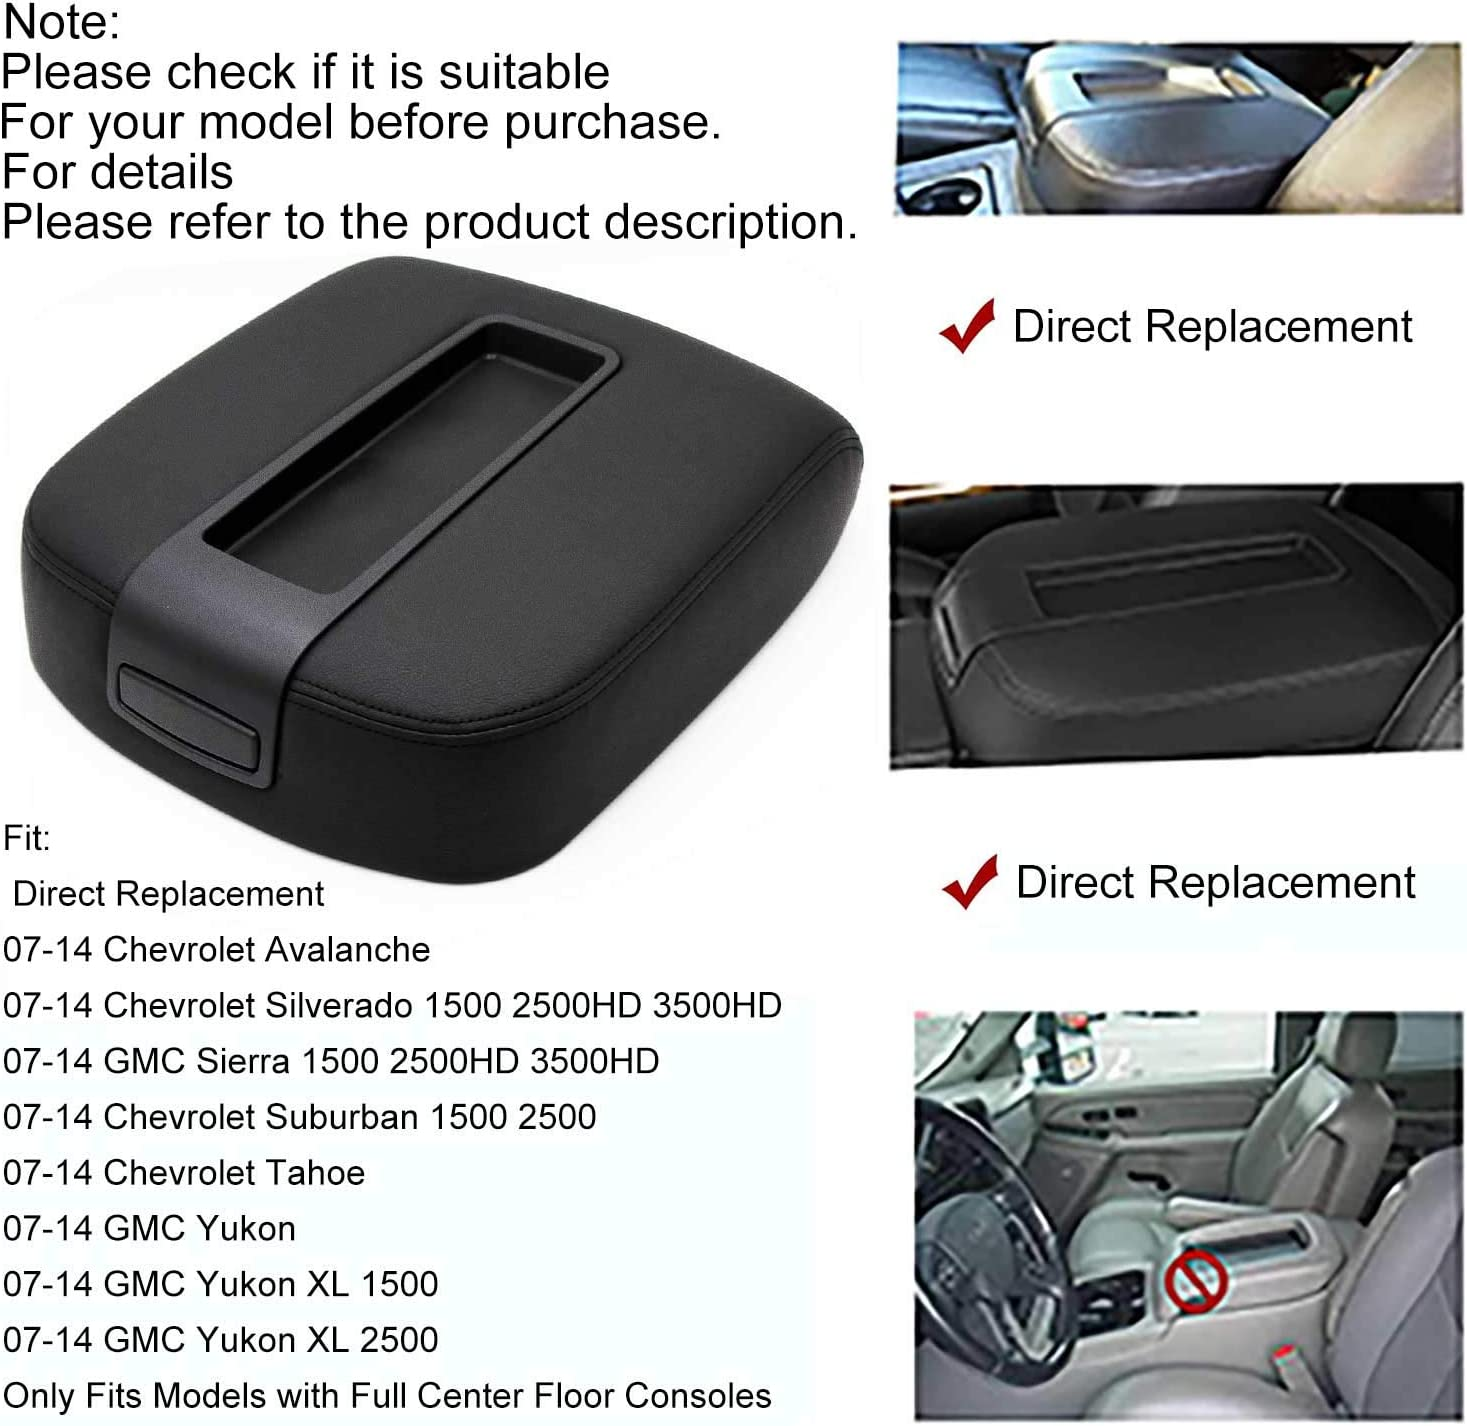 Dasbecan Car Center Console Armrest Cover Lid Leather Compatible with 2007-2014 Chevy Avalanche Silverado Suburban 1500 2500 GMC Yukon Sierra 2500HD 3500HD Beige